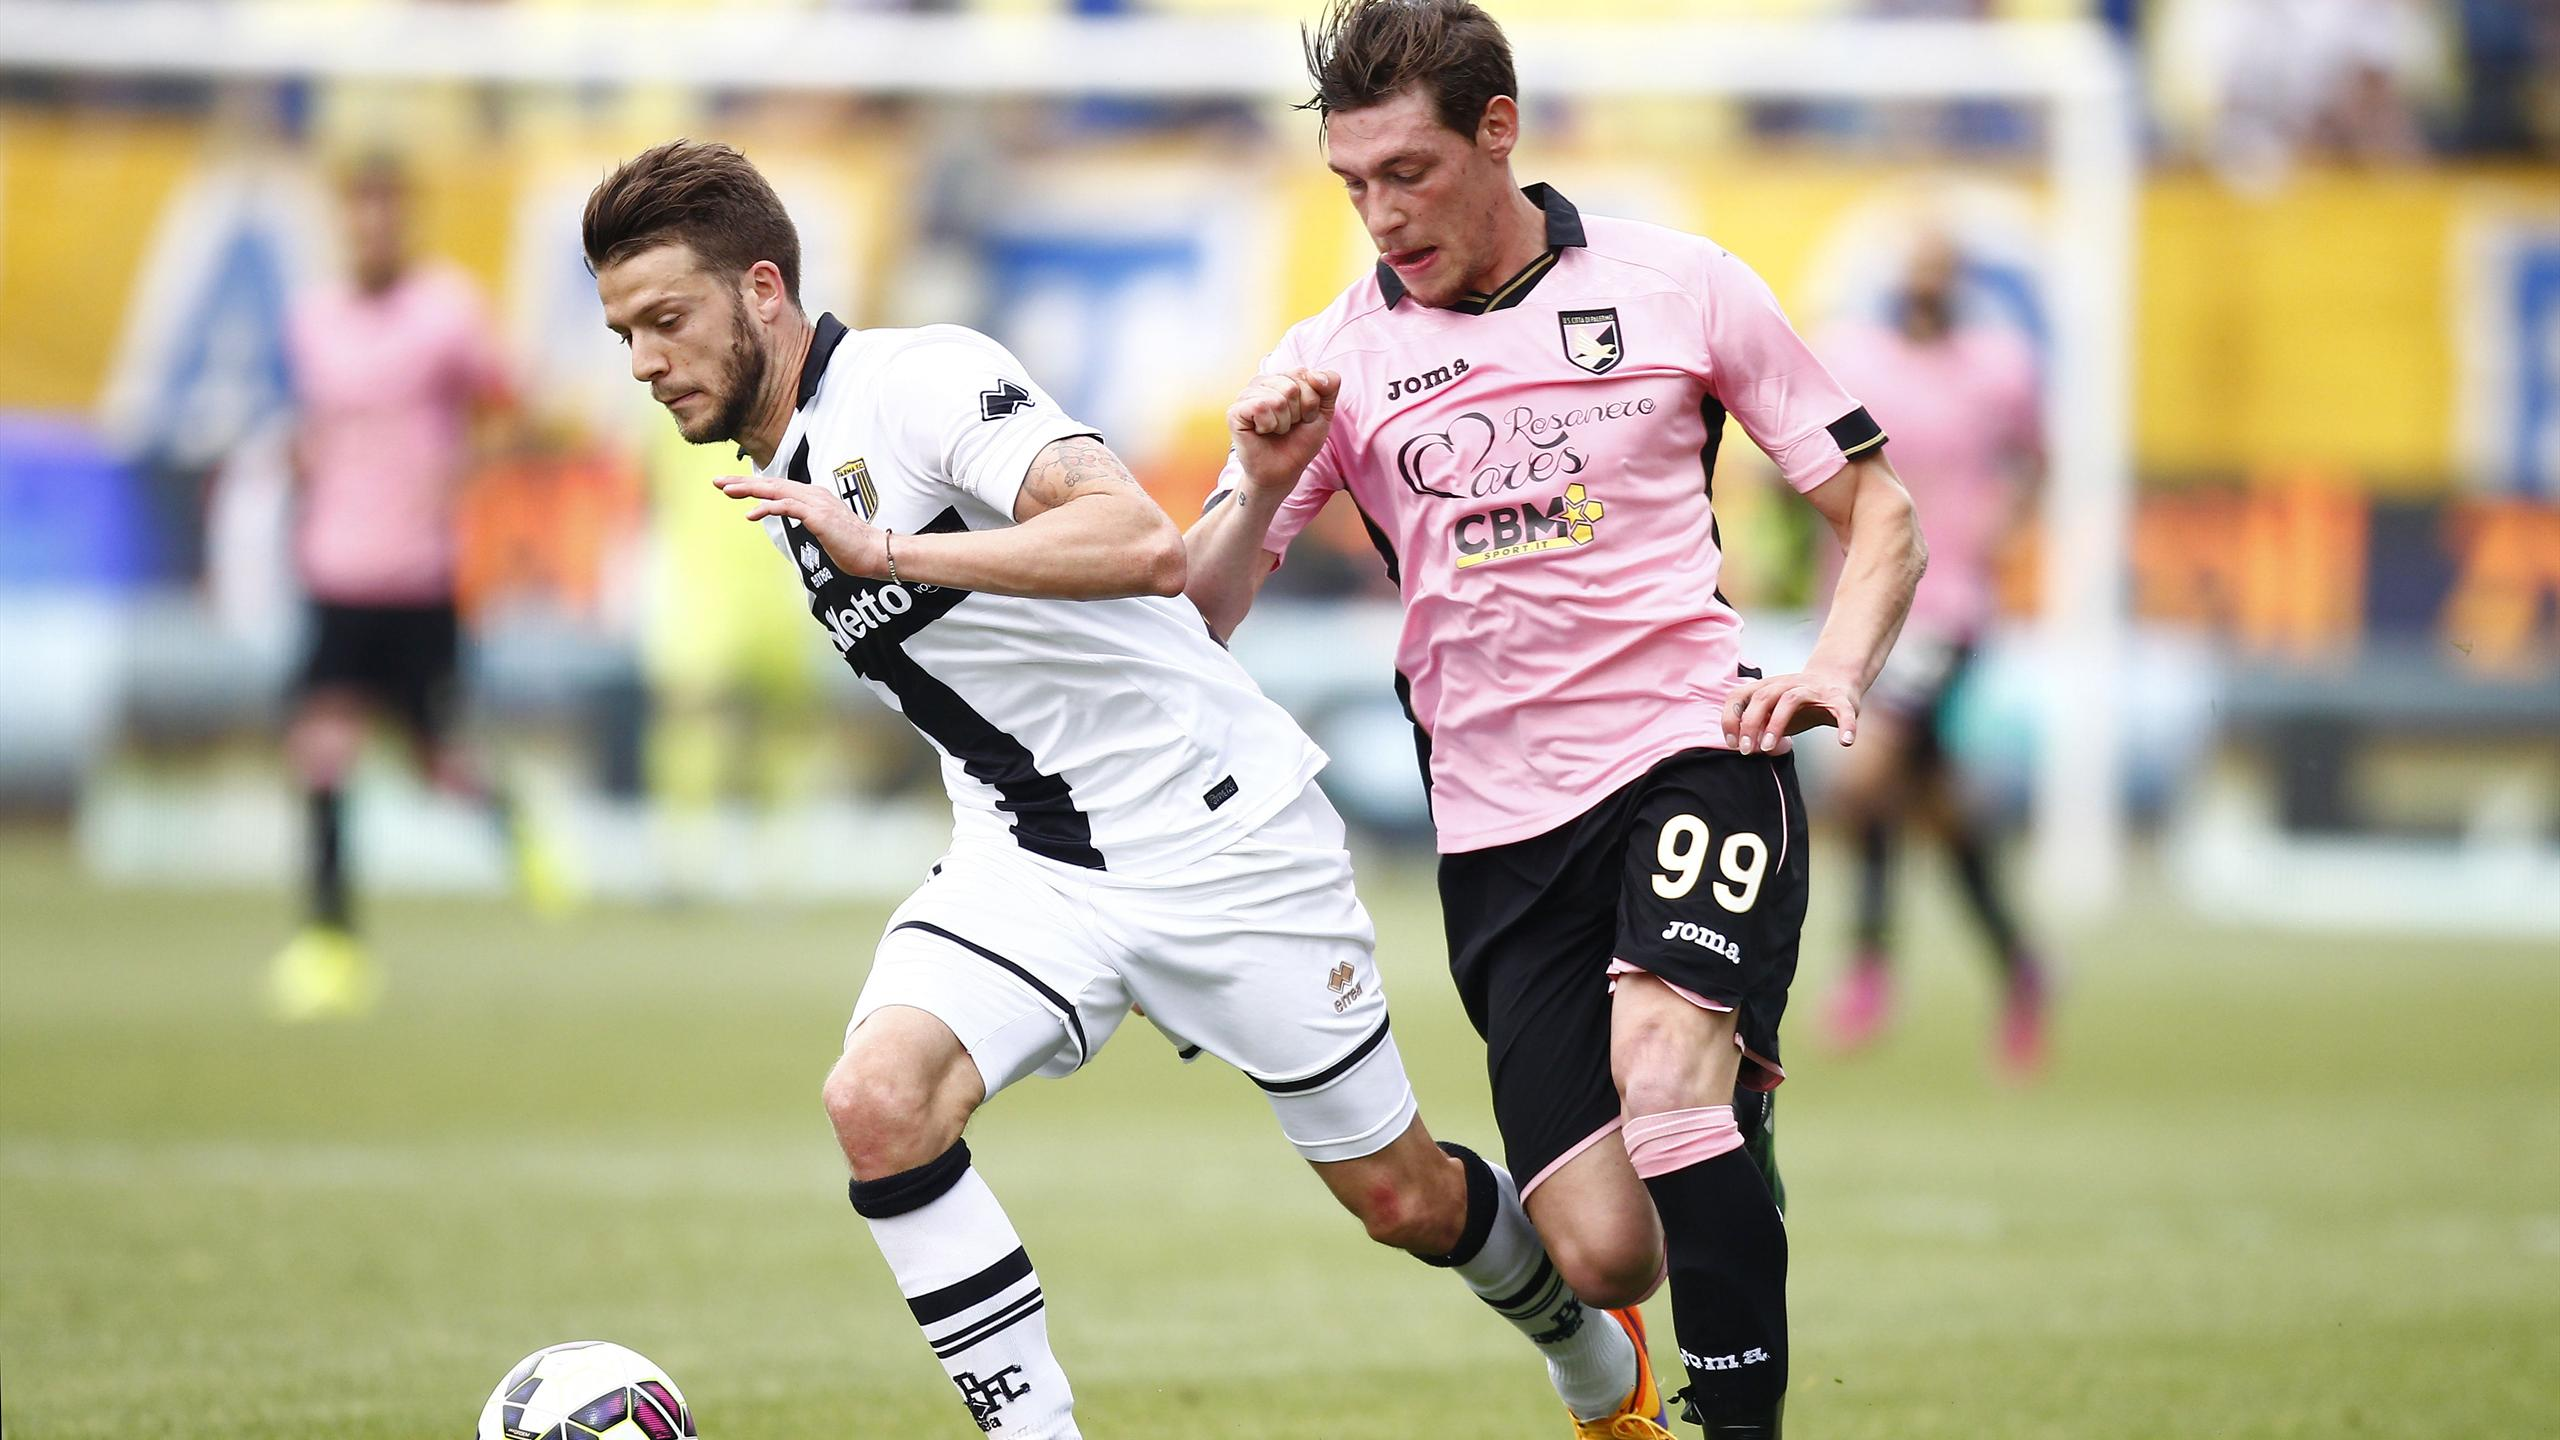 Video: Parma vs Palermo